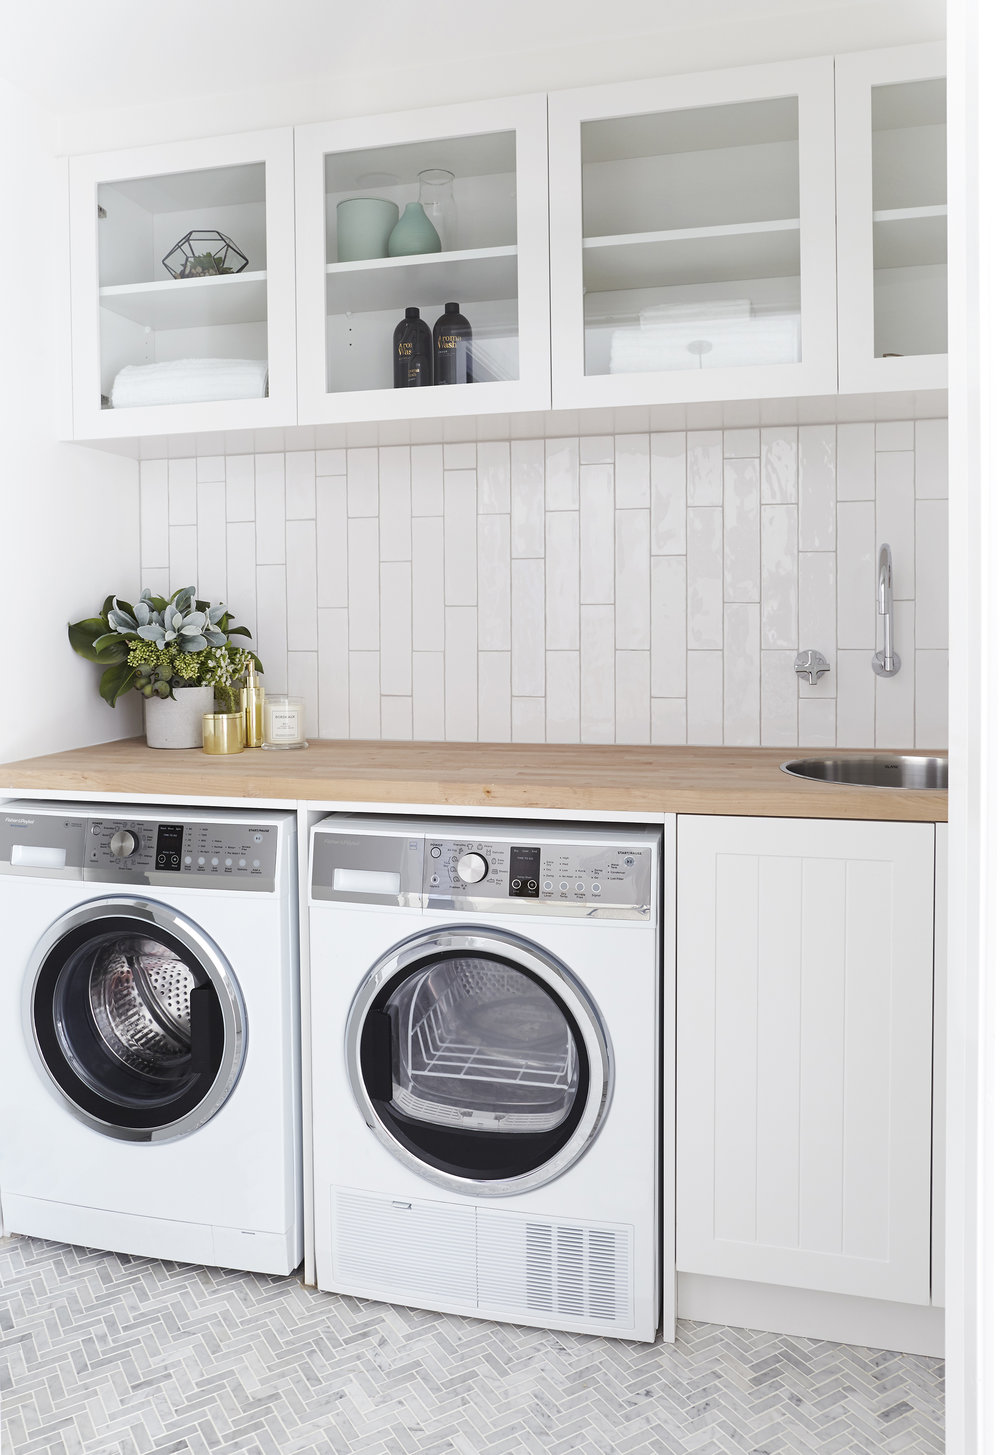 Washing Machine |   F   isher & Paykel  Wash Smart  Dryer |   Fisher & Paykel  Condensing Dryer  Cabinets |   Carrera By Design   Taps |   Caroma